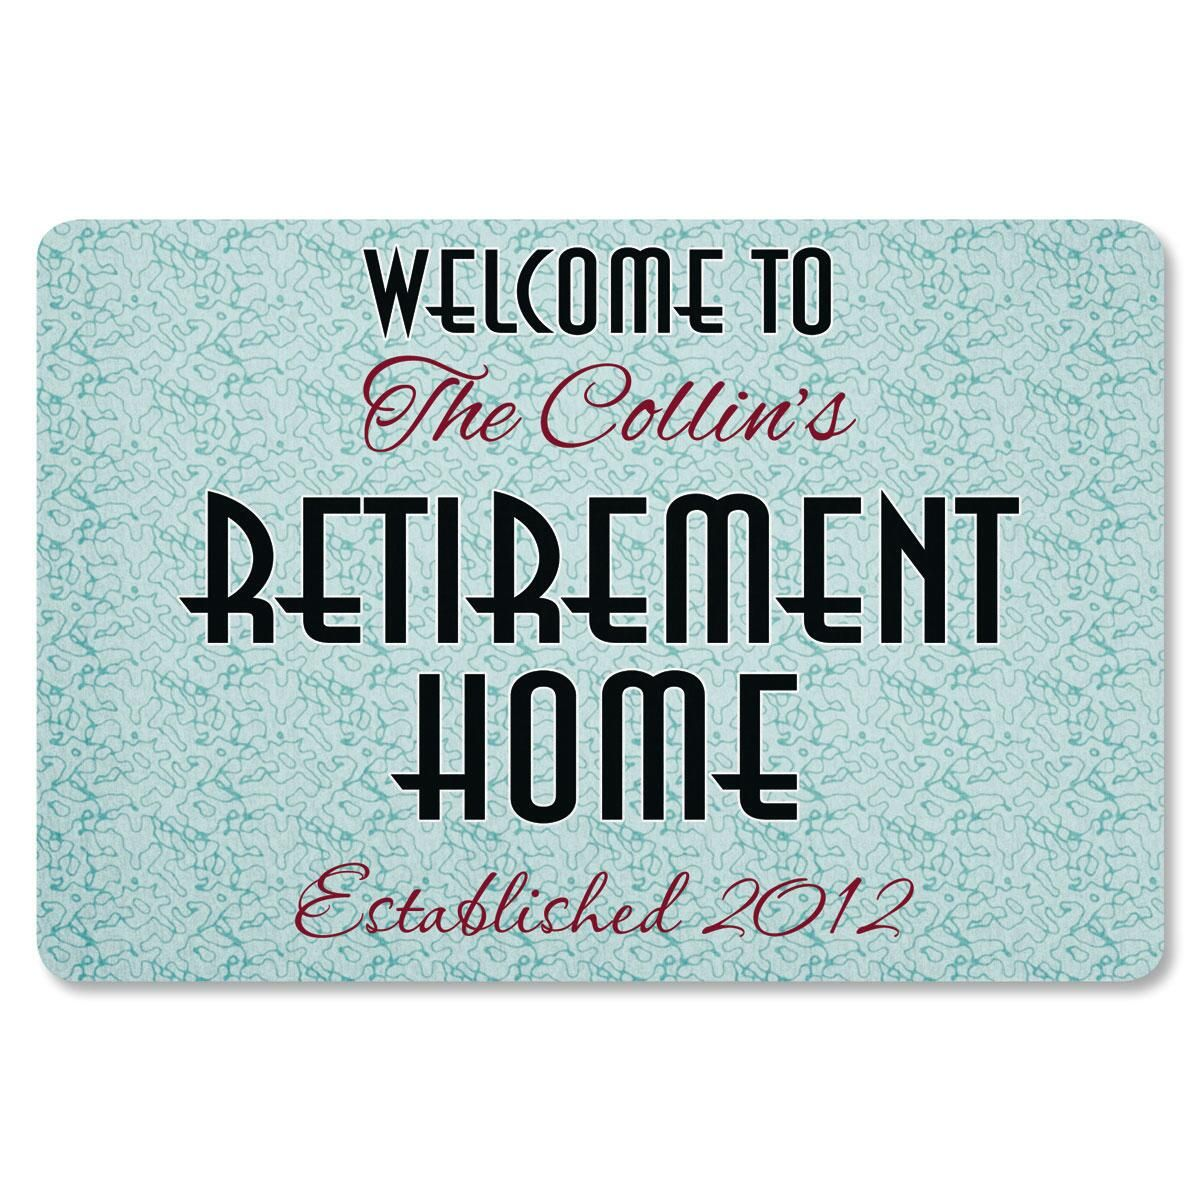 Retirement Home Personalized Welcome Doormat